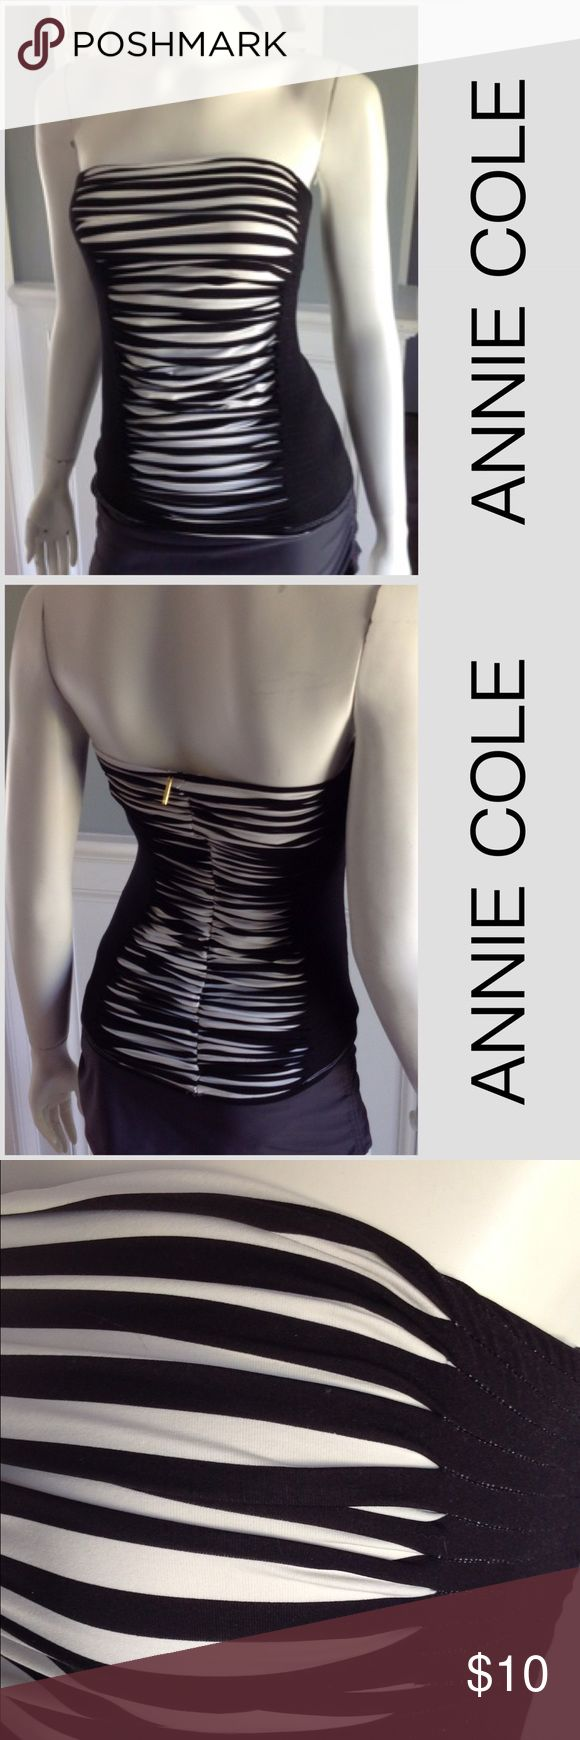 ANNE COLE black while stripe slimming tankini S Strapless. No tags. Some wear. price reflective. Modeled on a size 6 mannequin. anne cole Swim Bikinis